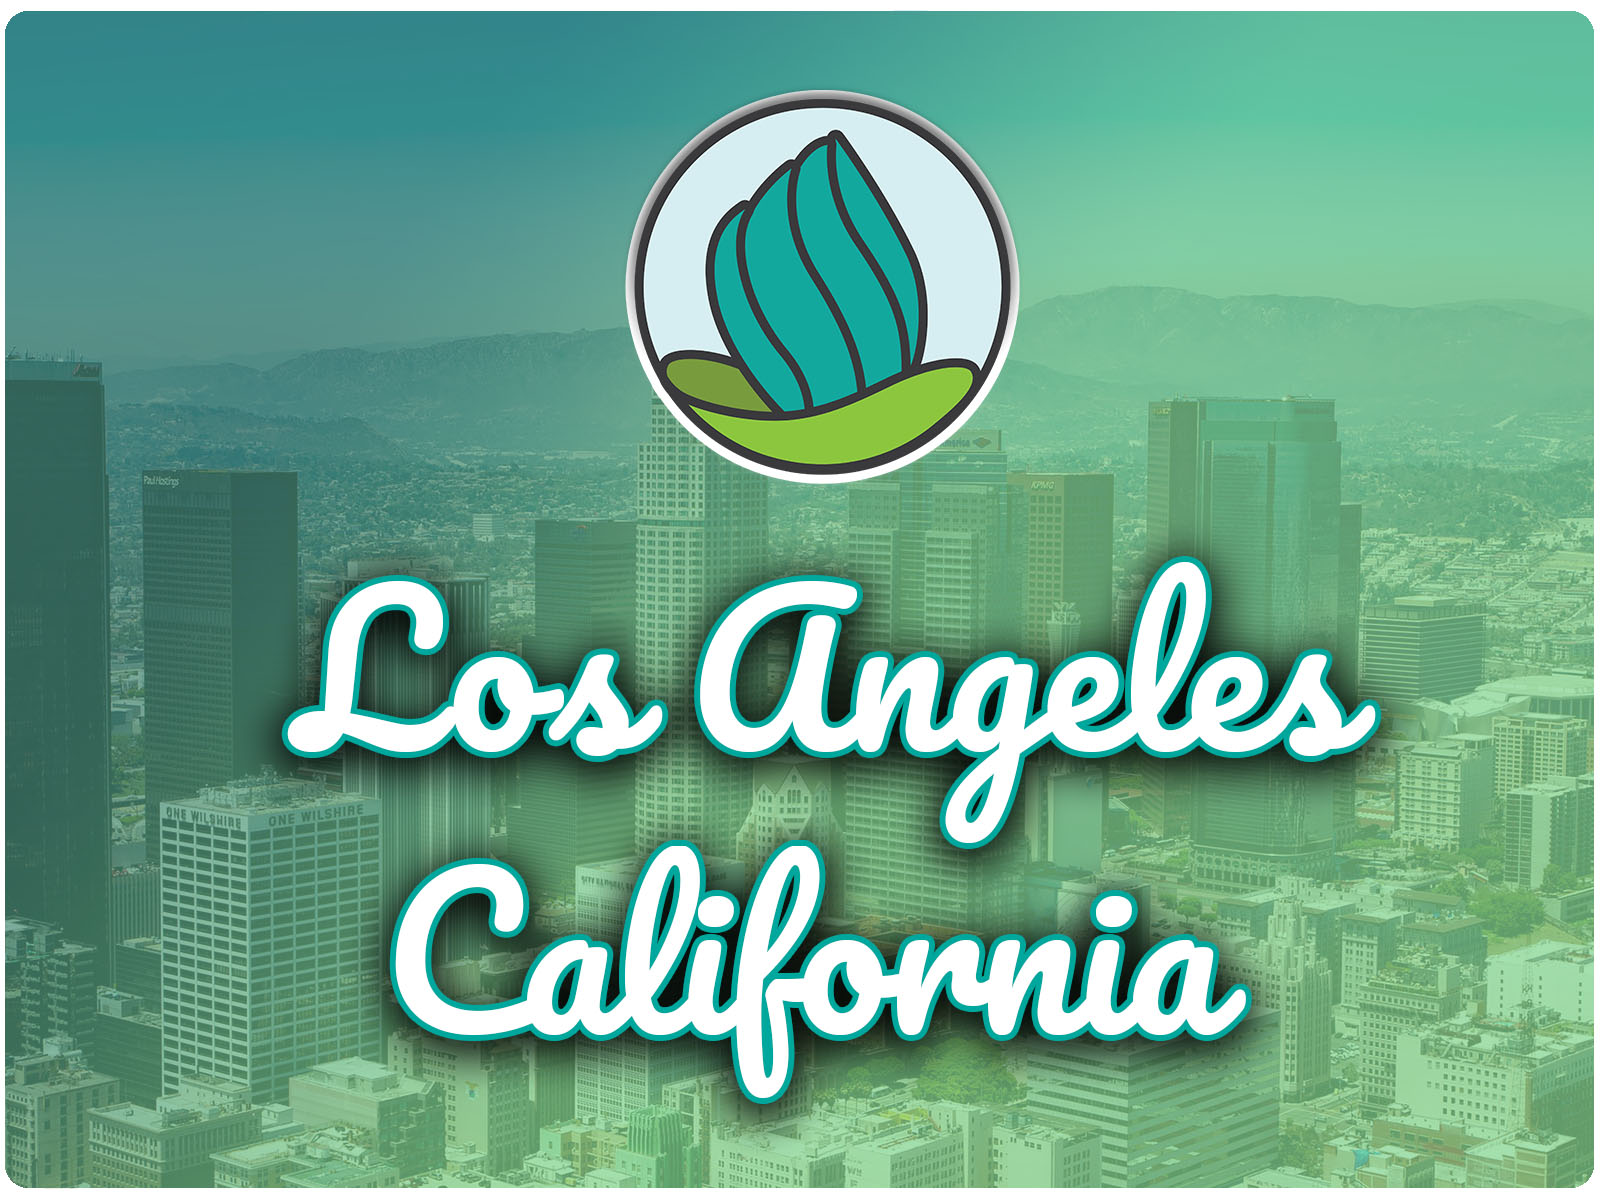 photo of city buildings with green gradient overlay, NDC logo, and the letters 'Los Angeles, California' in cursive